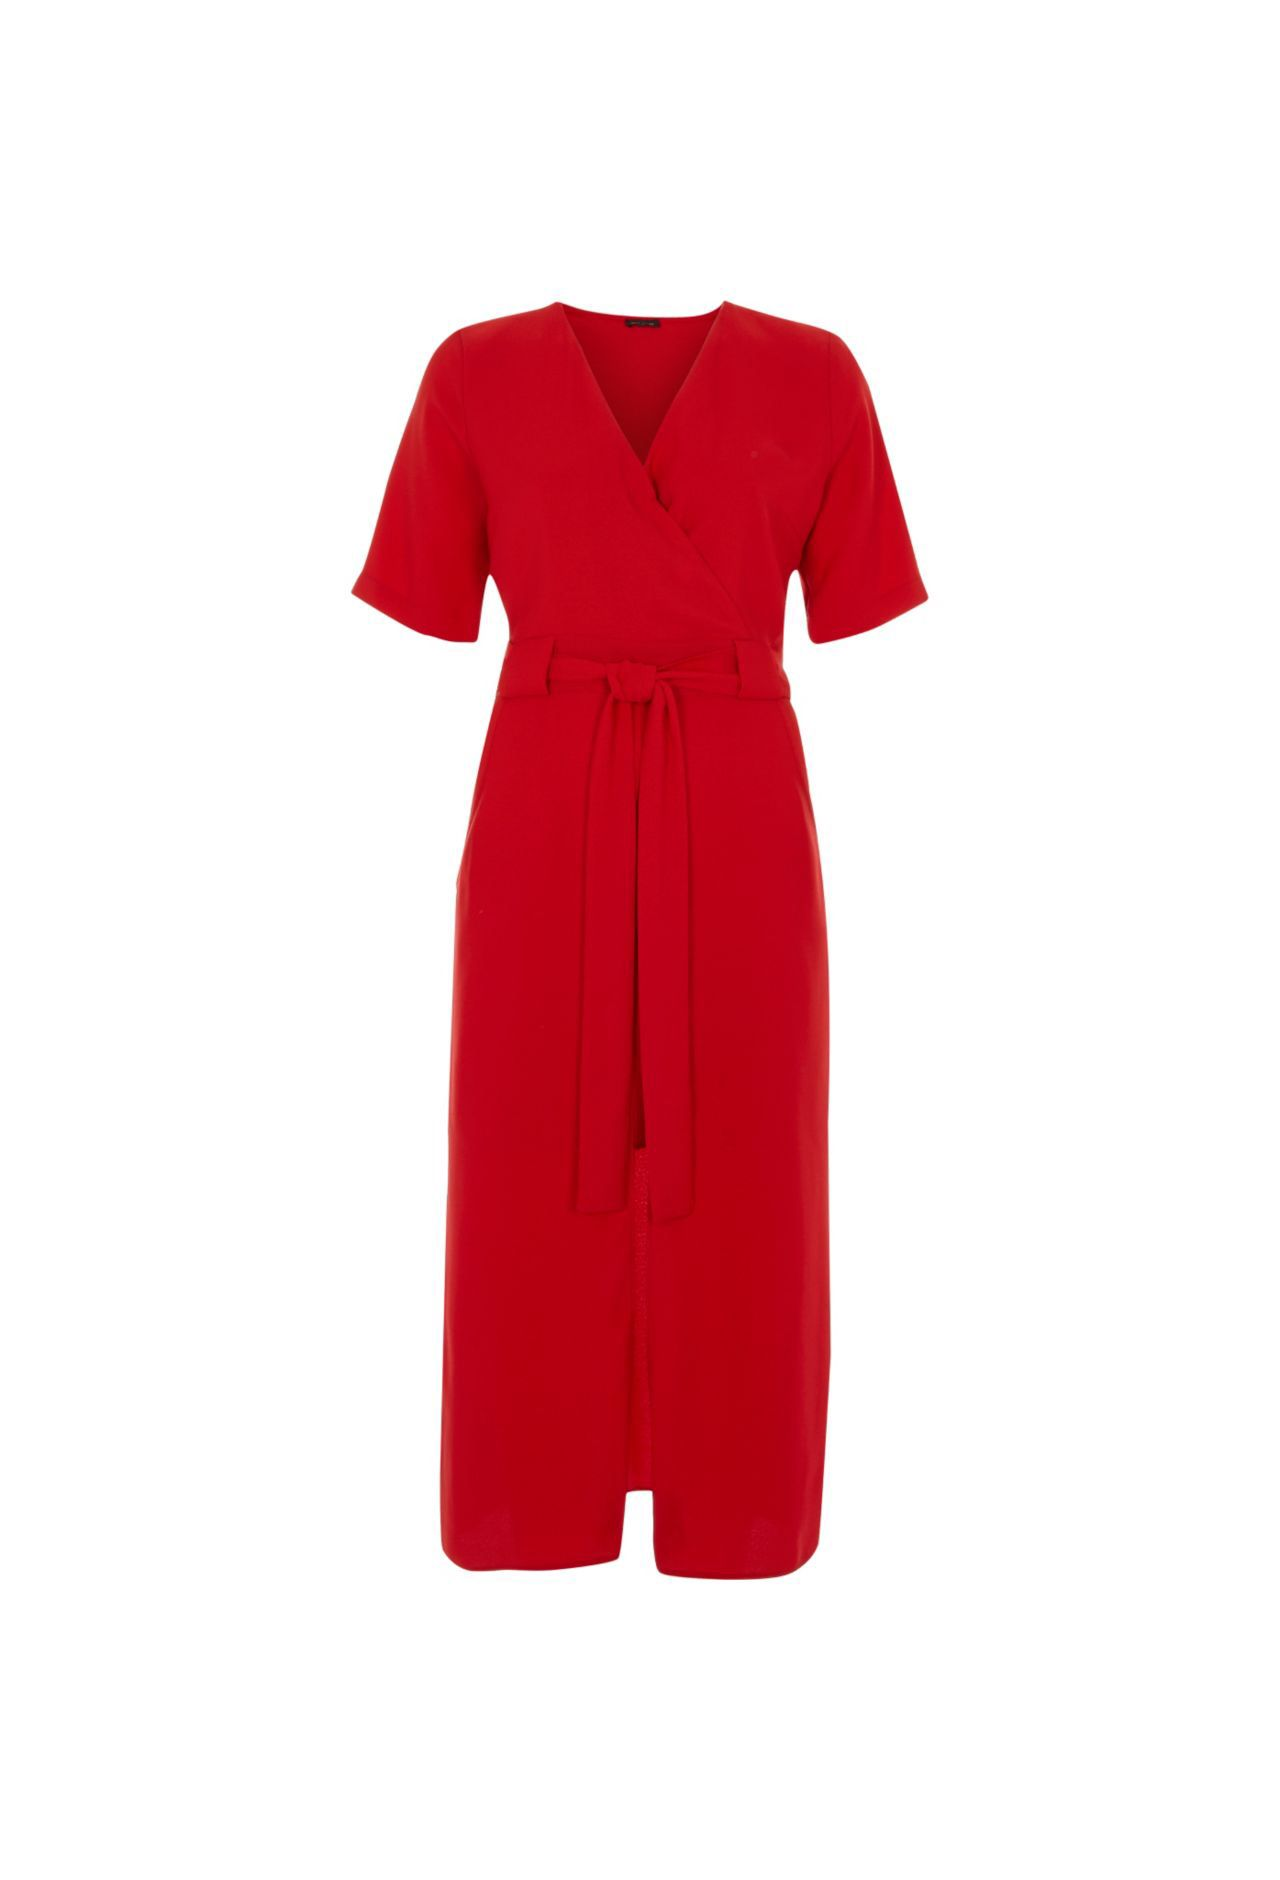 Checkout this Bright red wrap shirt midi dress from River Island